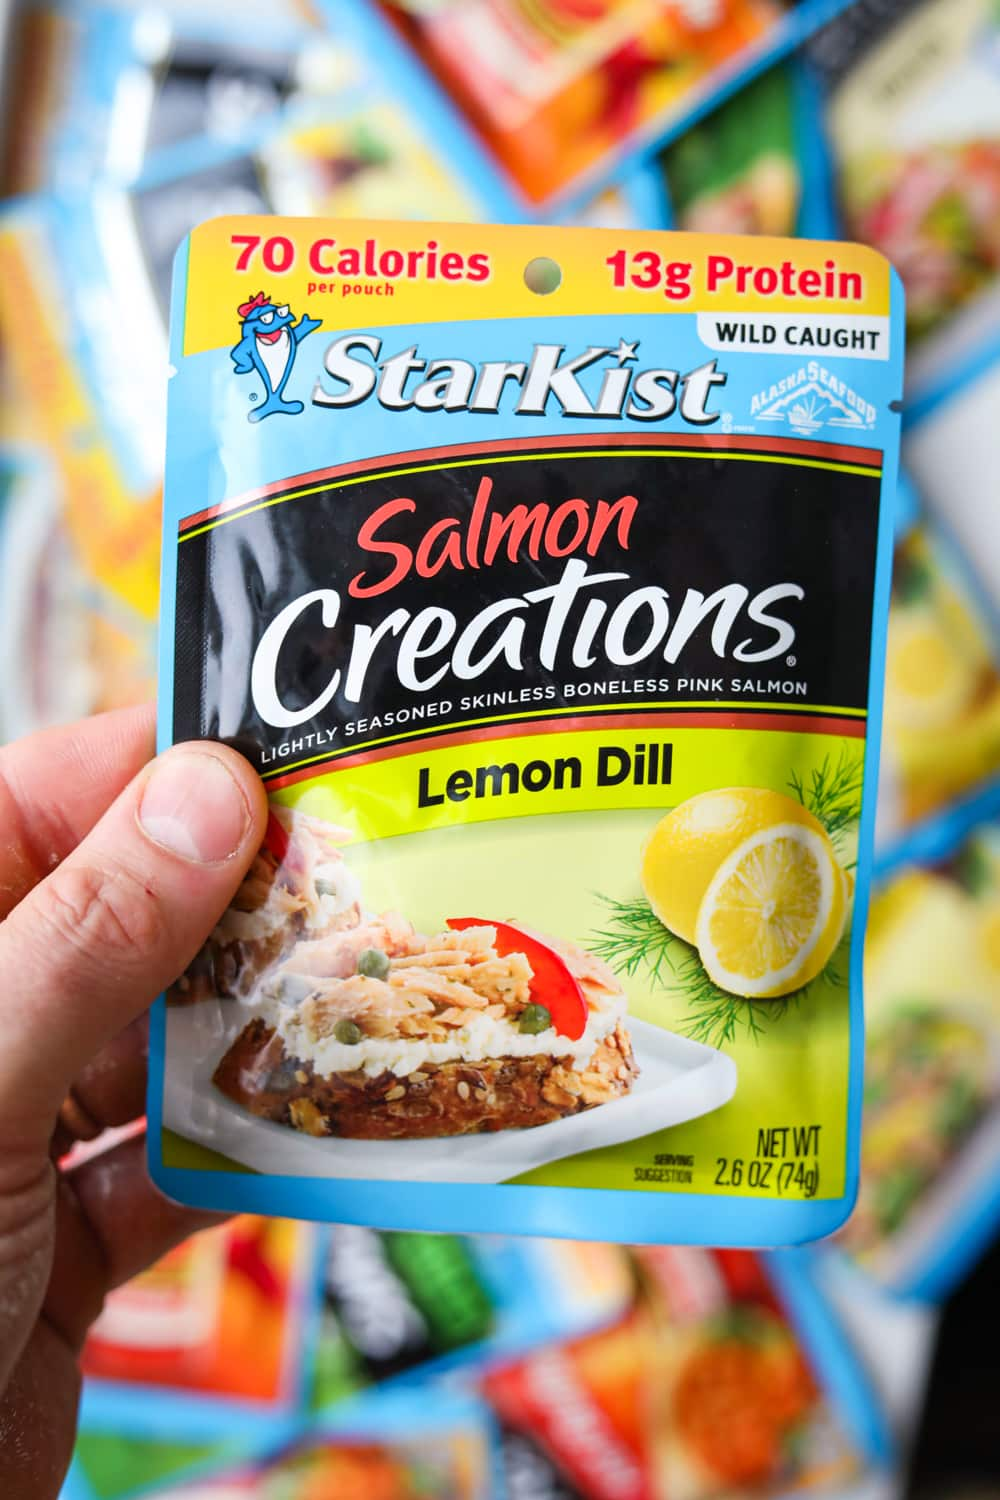 The front side of a Starkist Salmon Lemon Dill Creations Packet.